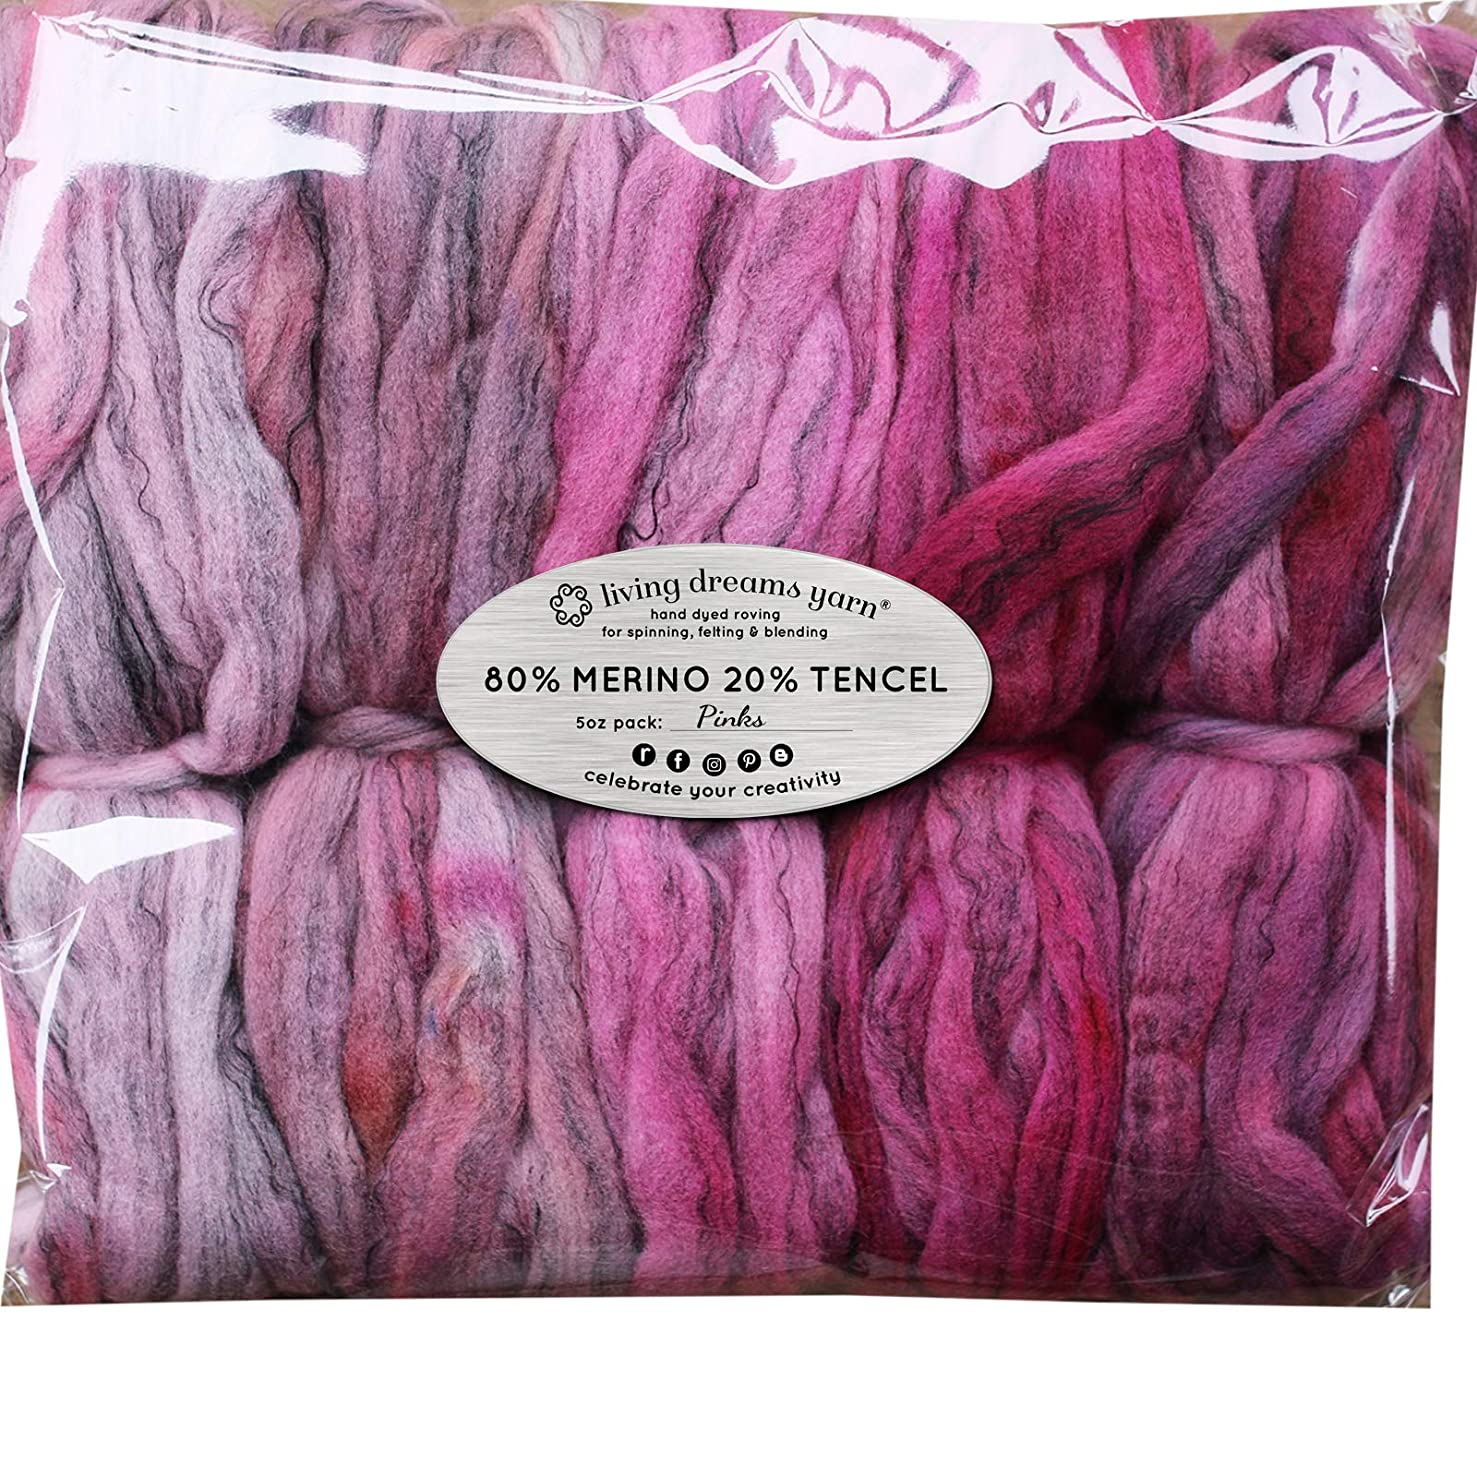 Hand Dyed Merino Tencel Spinning Fiber. Super Soft Wool Top Roving drafted for Hand Spinning, Felting, Blending and Weaving. 5 Beautifully Colored Mini Skeins Discount Pack, Pinks